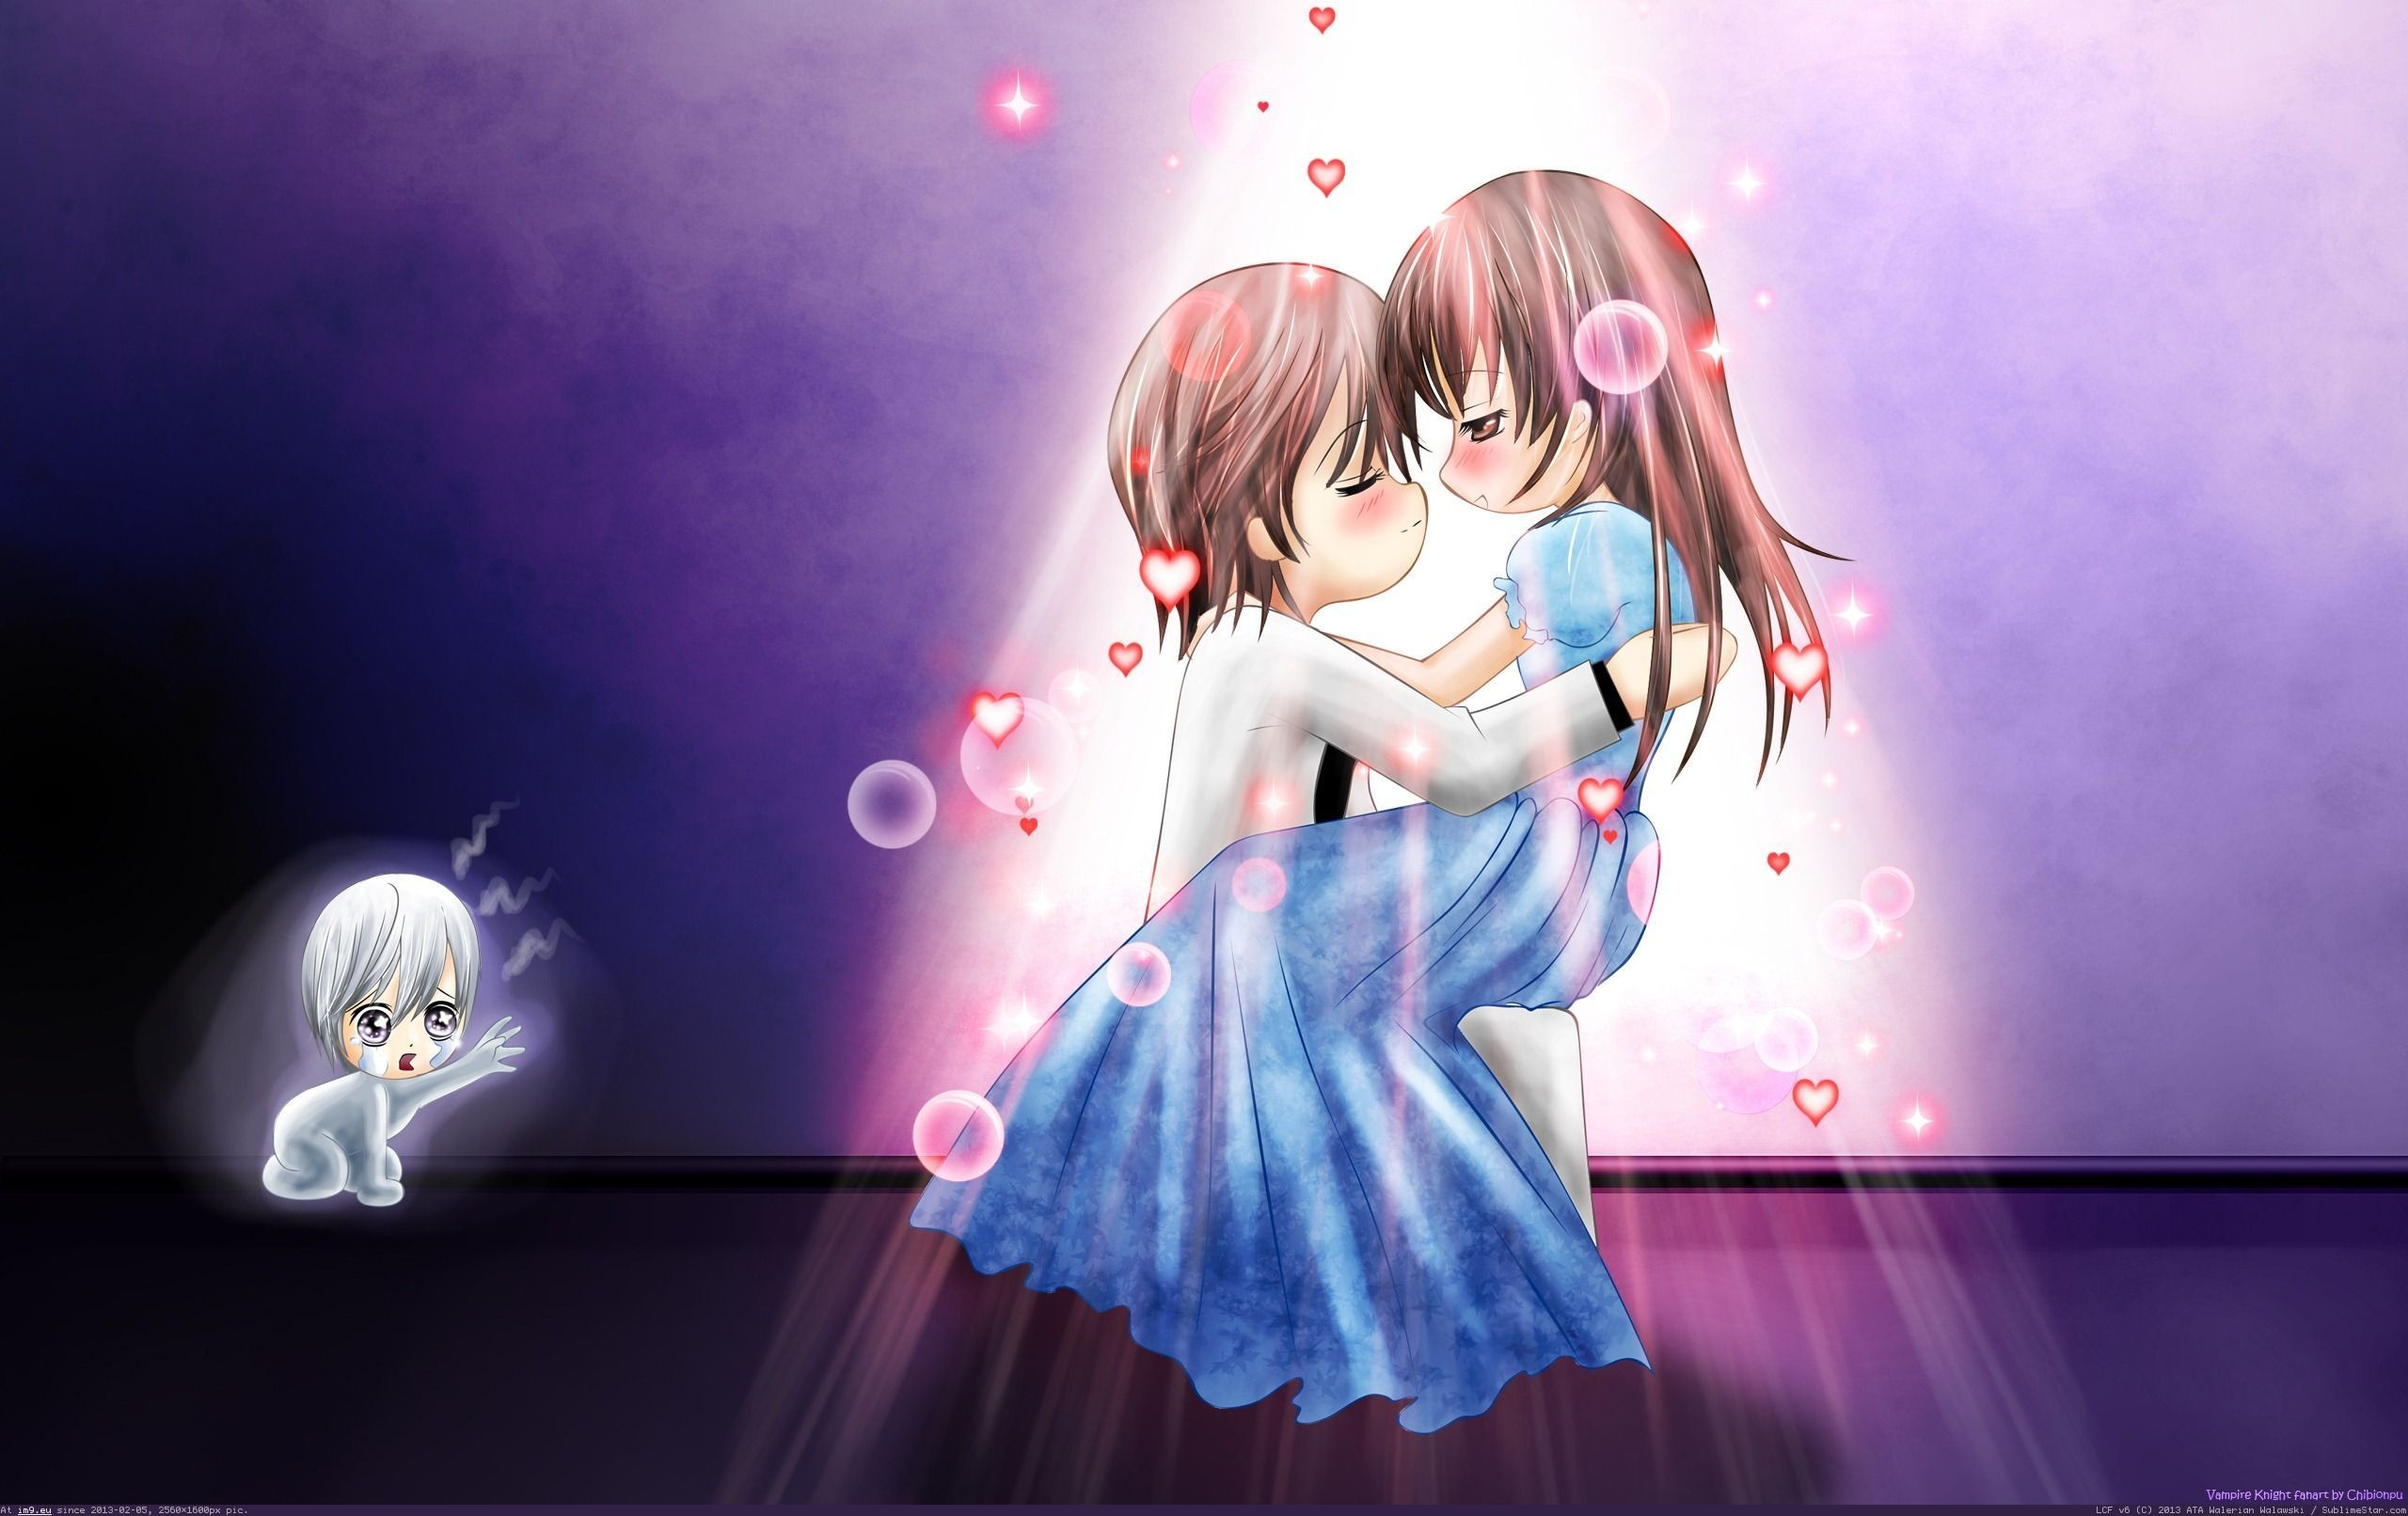 2560x1612 Anime Couple Wallpaper Hd Full Animated Cartoon Desktop High Quality .